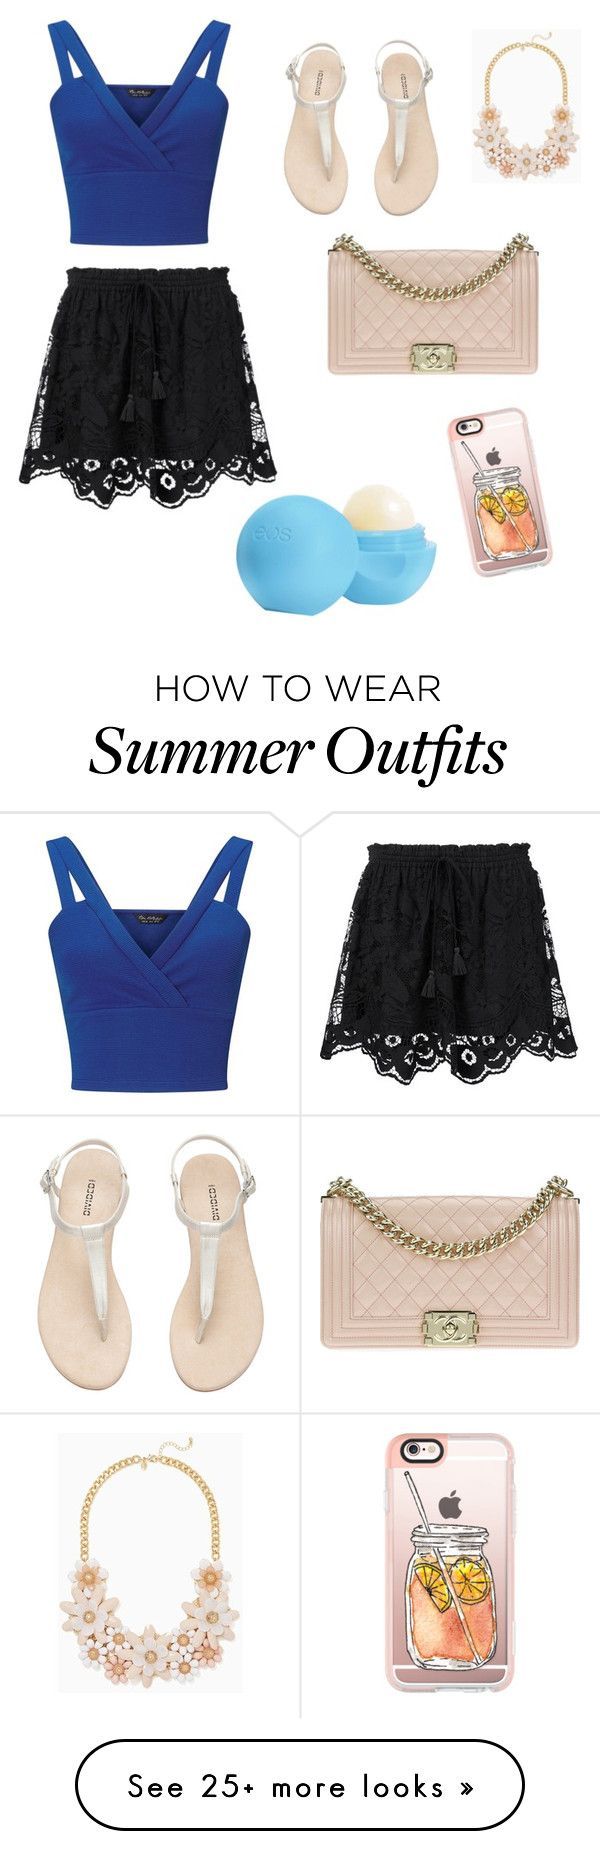 """""""Summer Day Outfit """" by lsantana13 on Polyvore featuring Chloé, Mis..."""